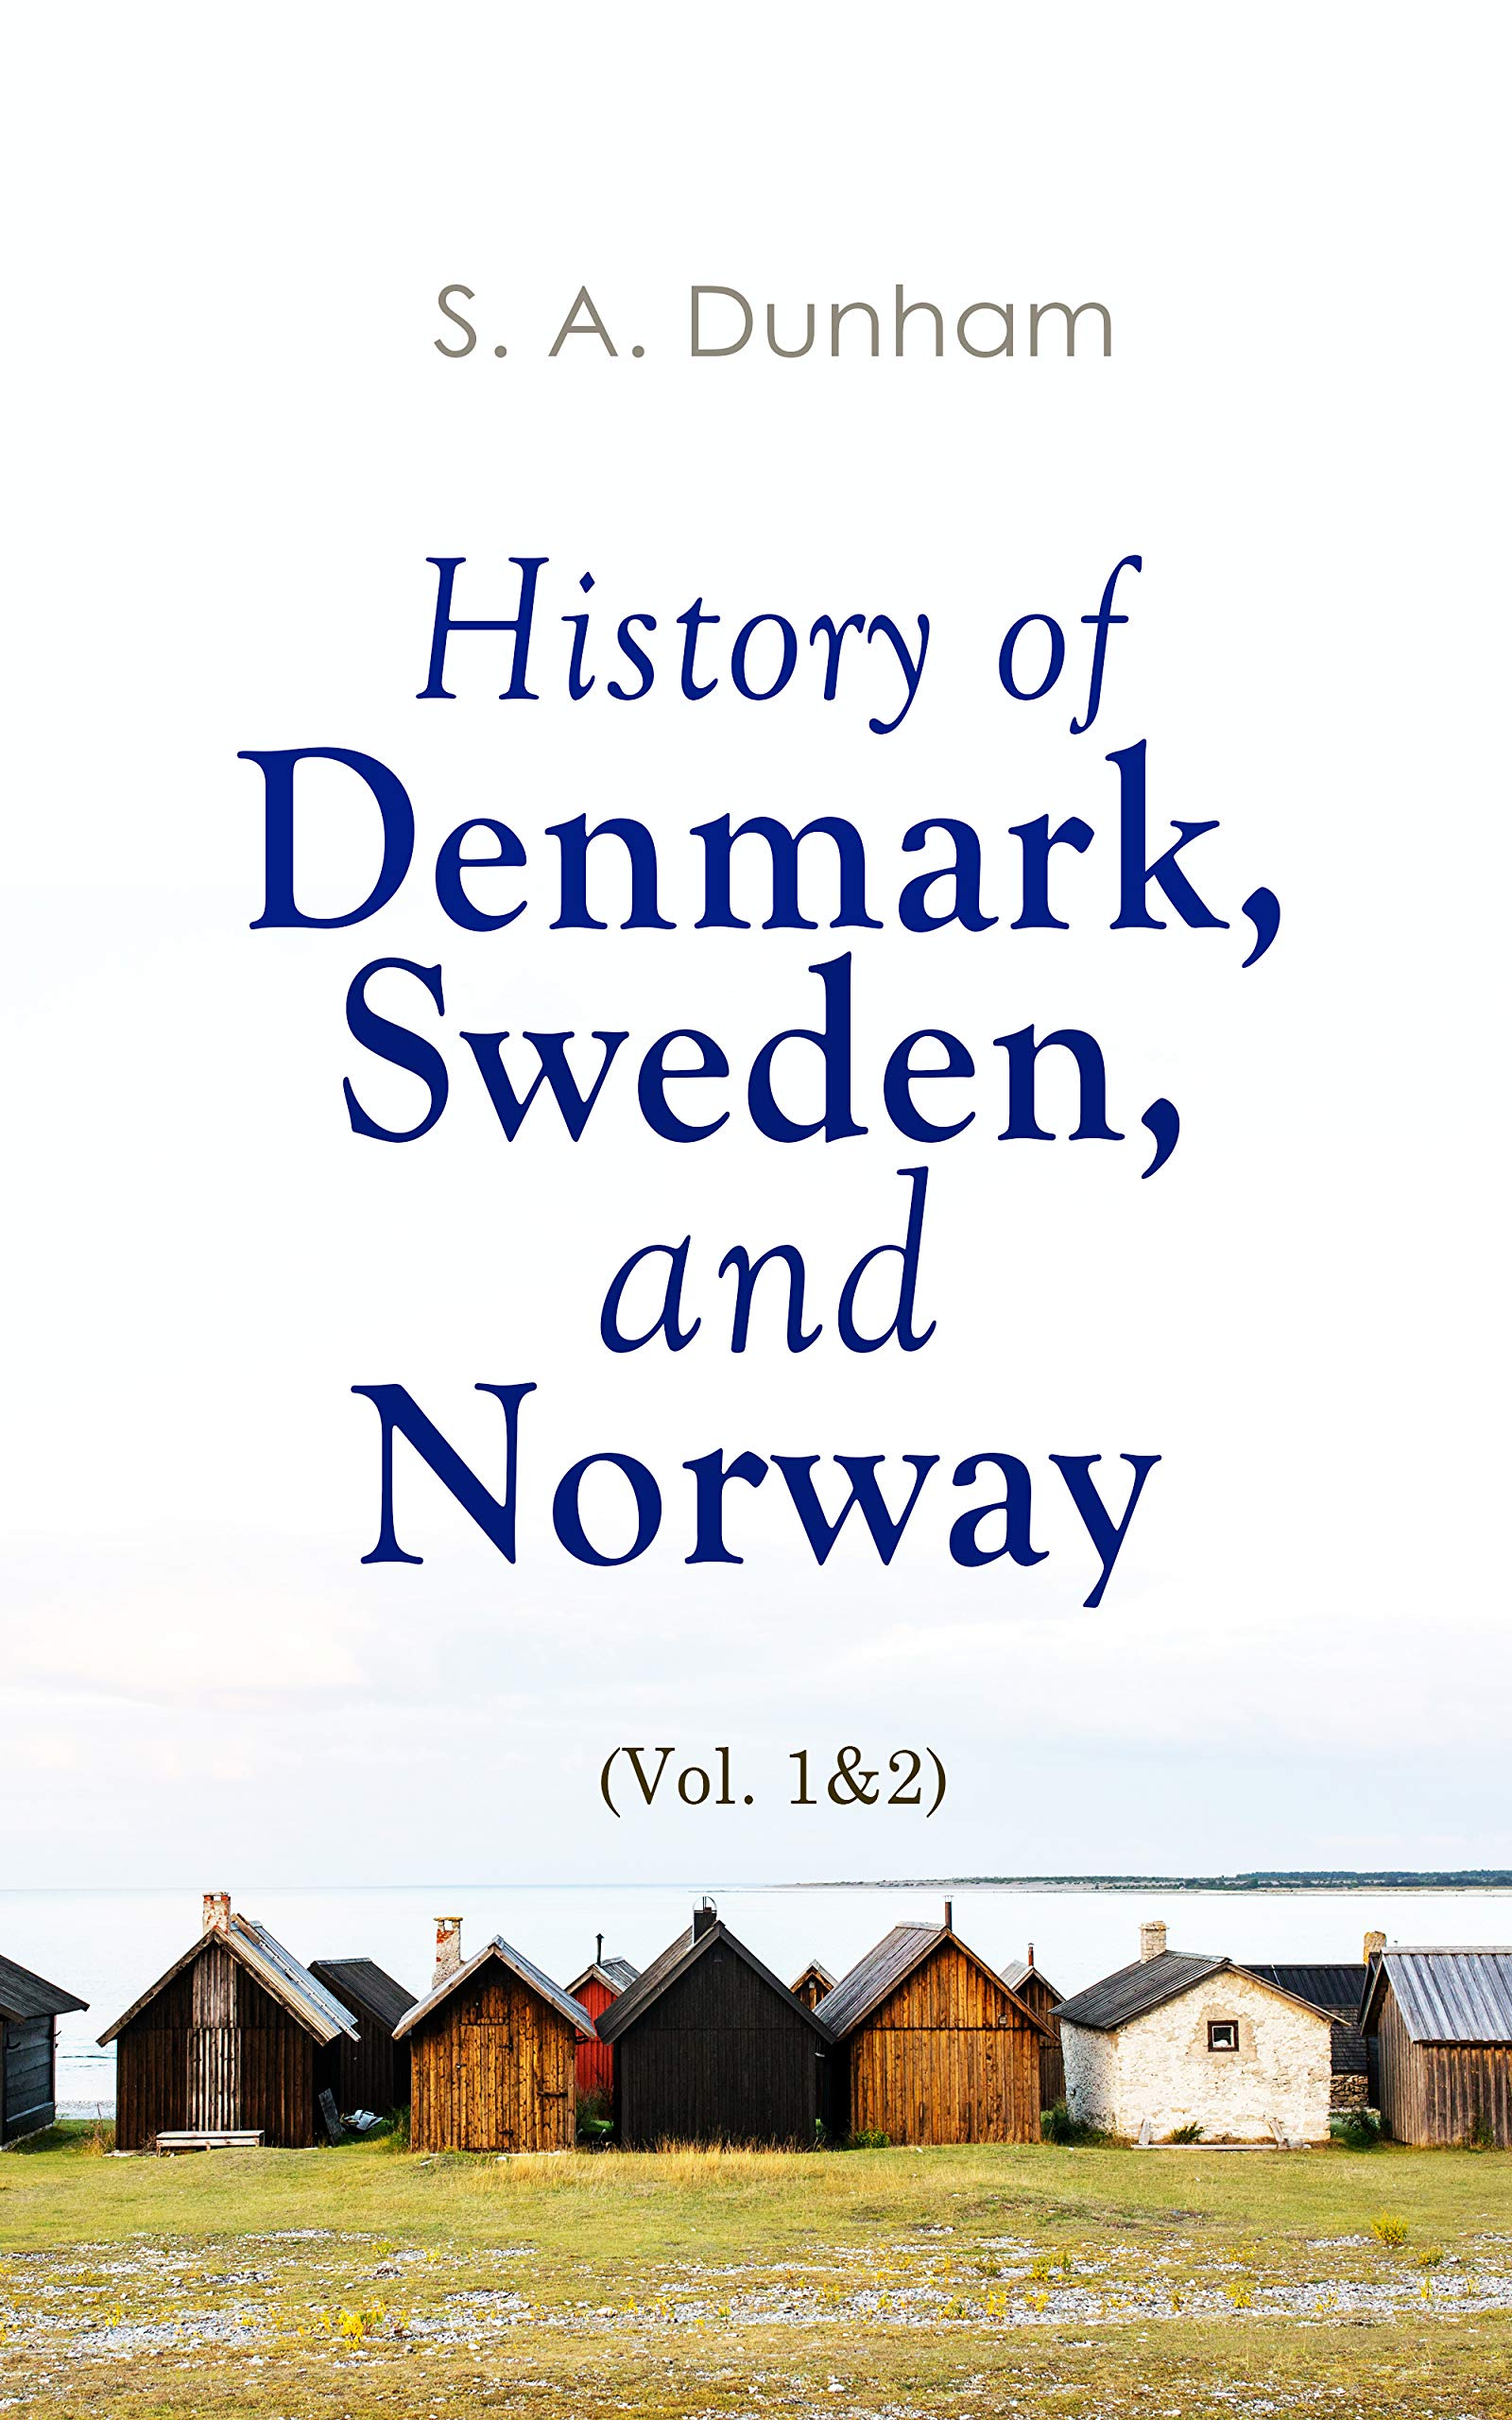 History of Denmark, Sweden, and Norway (Vol. 1&2): From the Ancient Times in 70 A.D. until Medieval Period in 14th Century